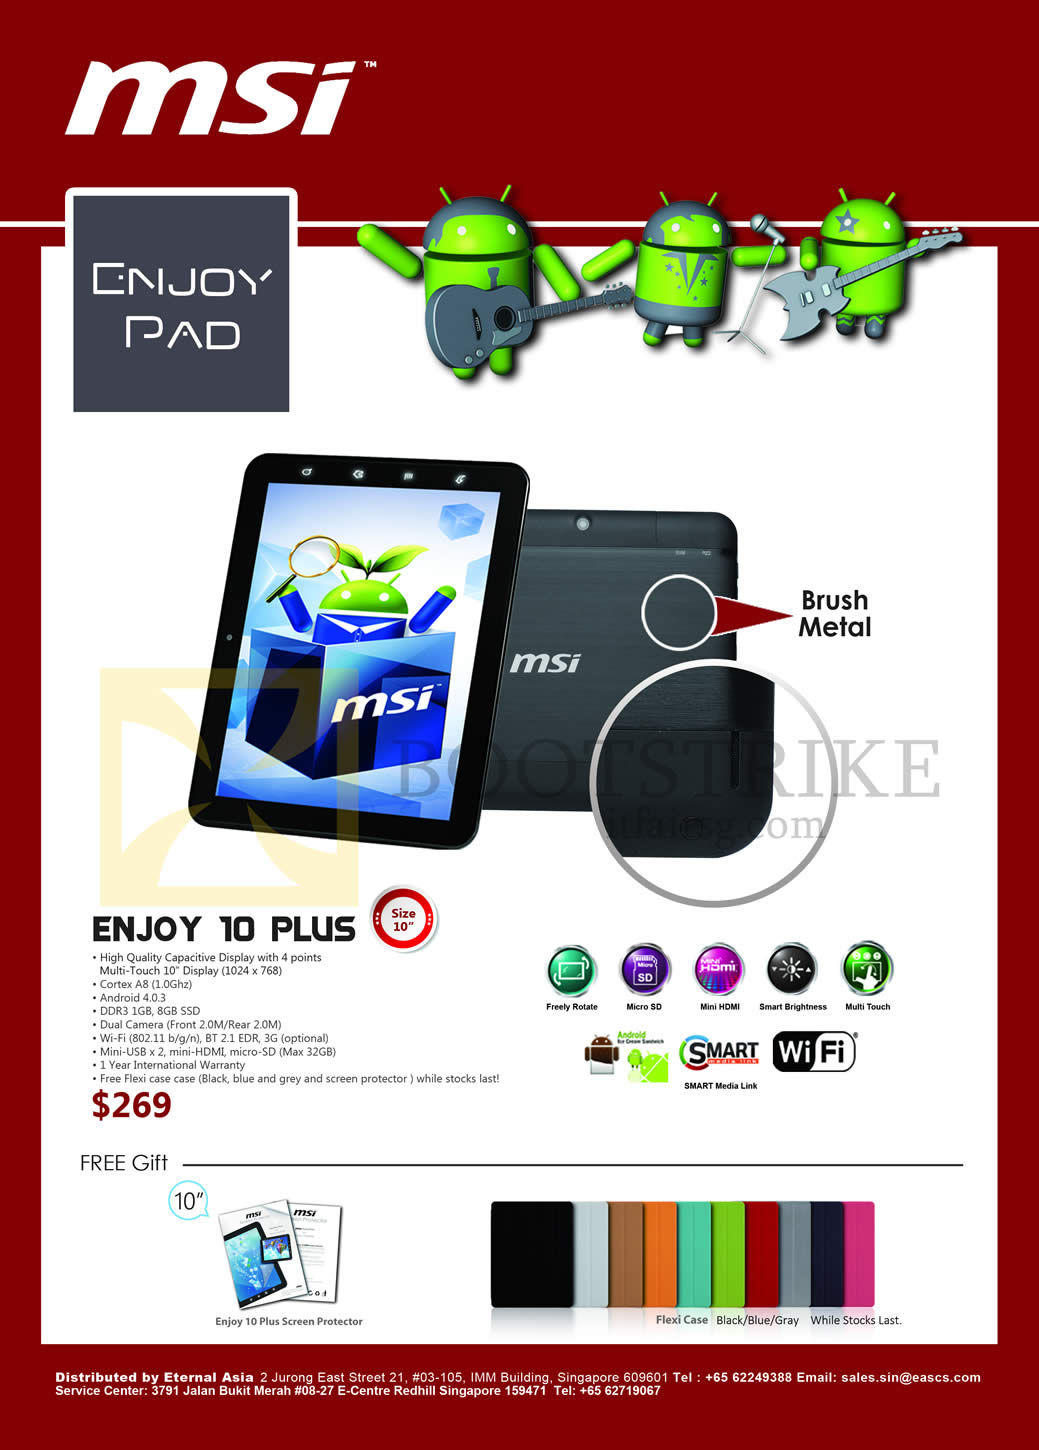 IT SHOW 2013 price list image brochure of Newstead MSI Tablet Enjoy Pad Enjoy 10 Plus